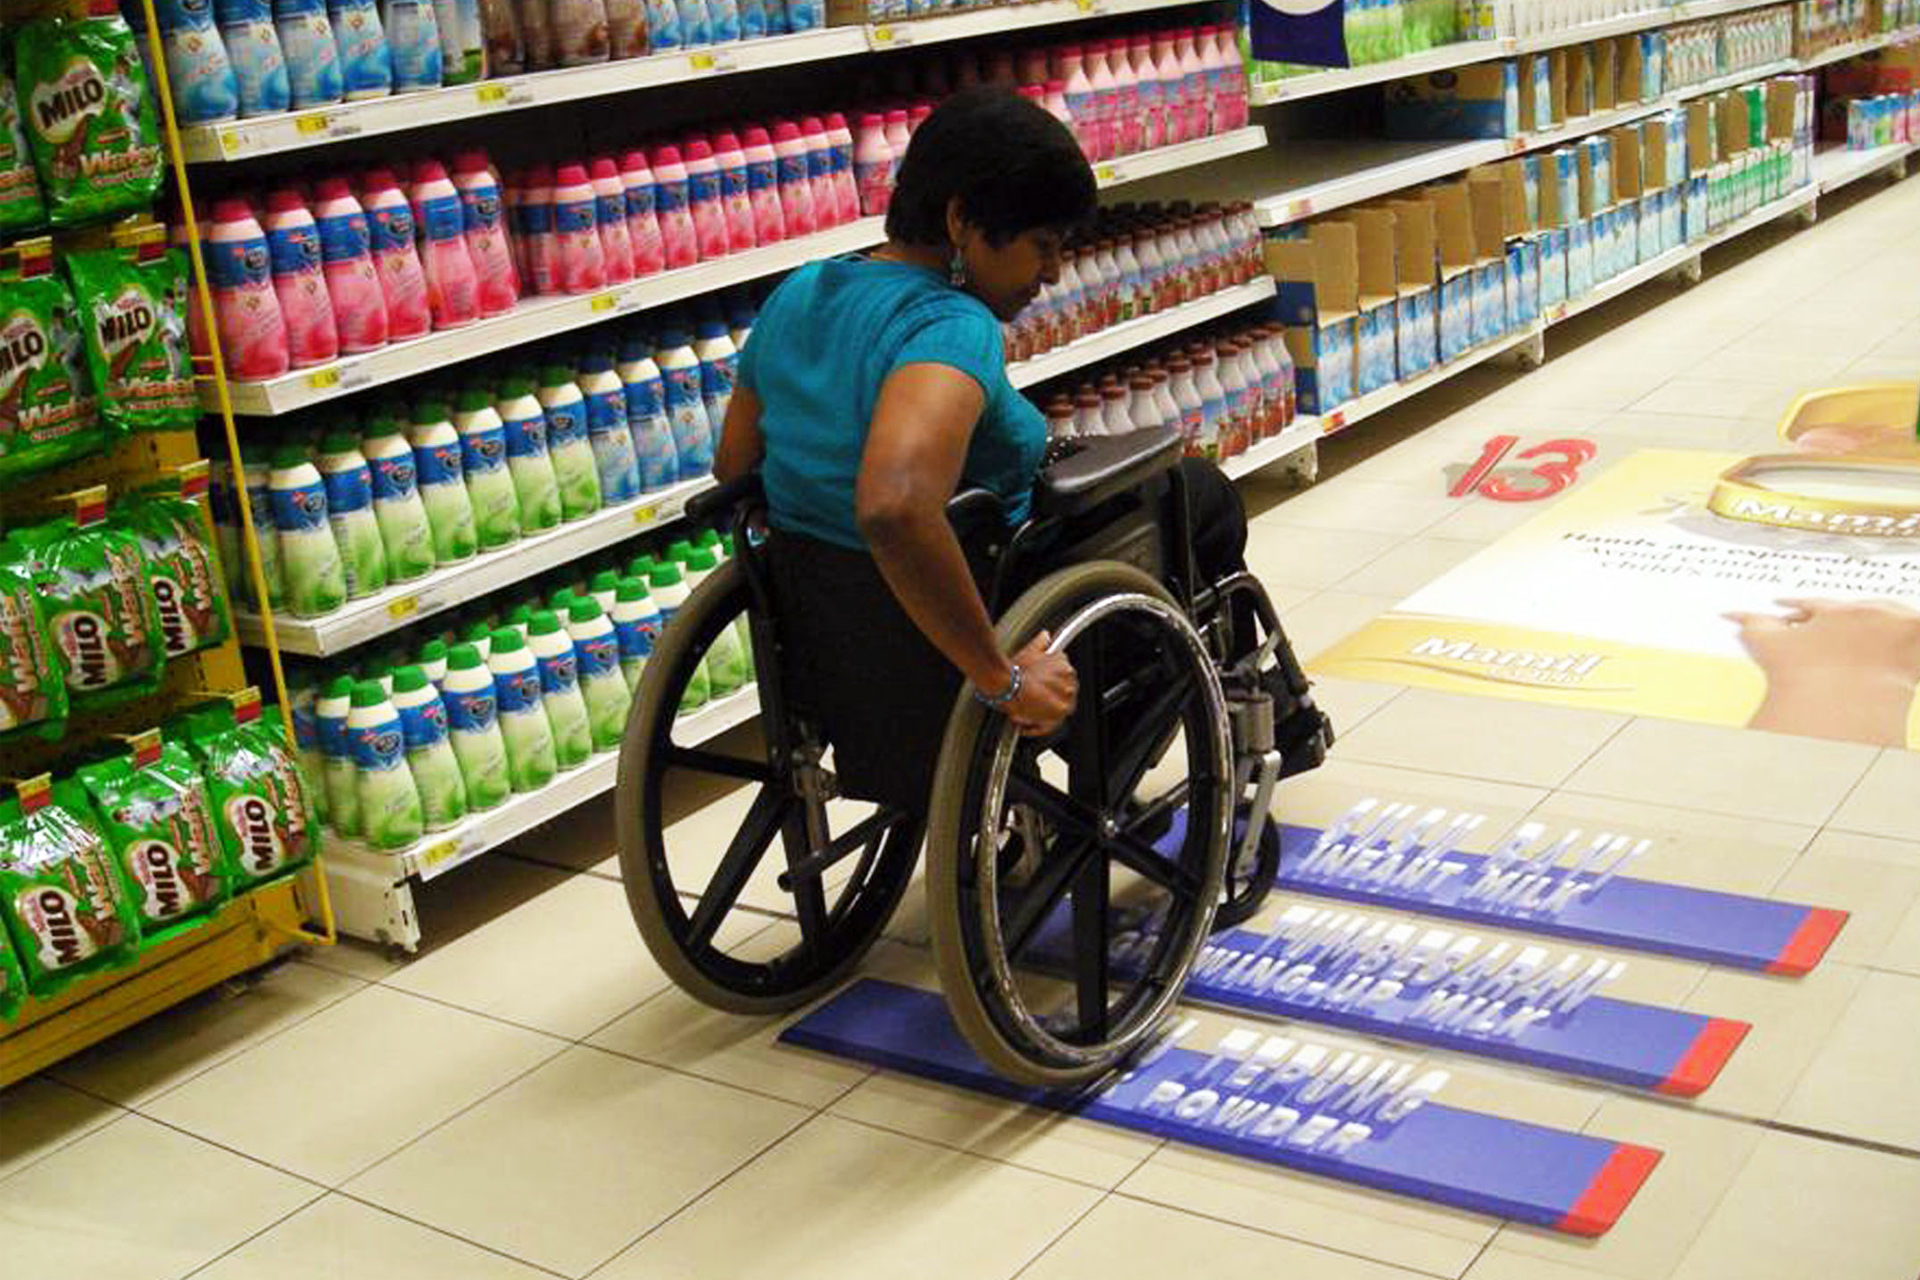 Signages on the floor useful for wheelchair users